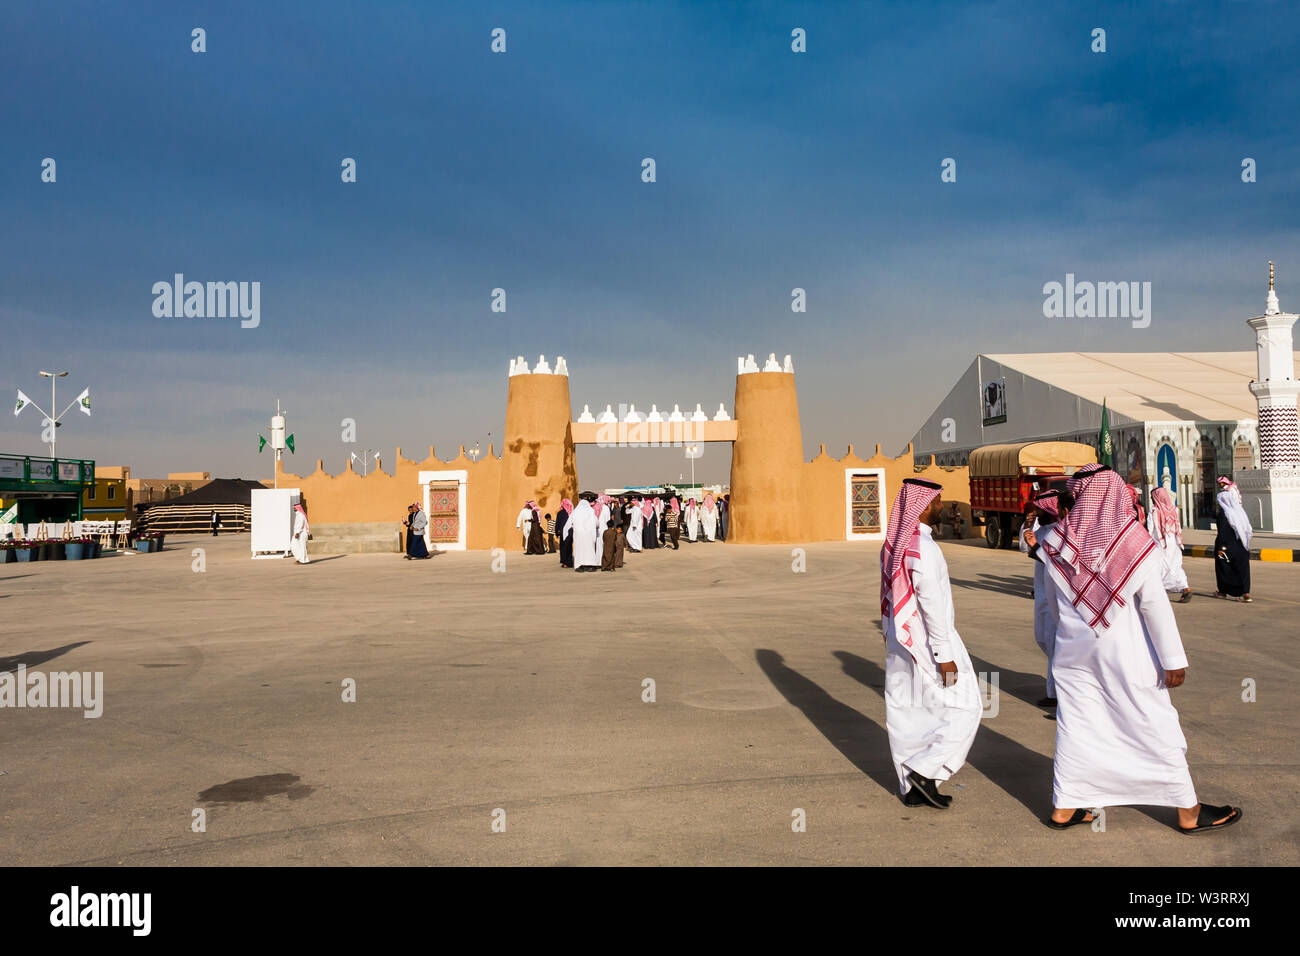 All'interno dell'Janadriyah Festival Village, Riyadh Immagini Stock